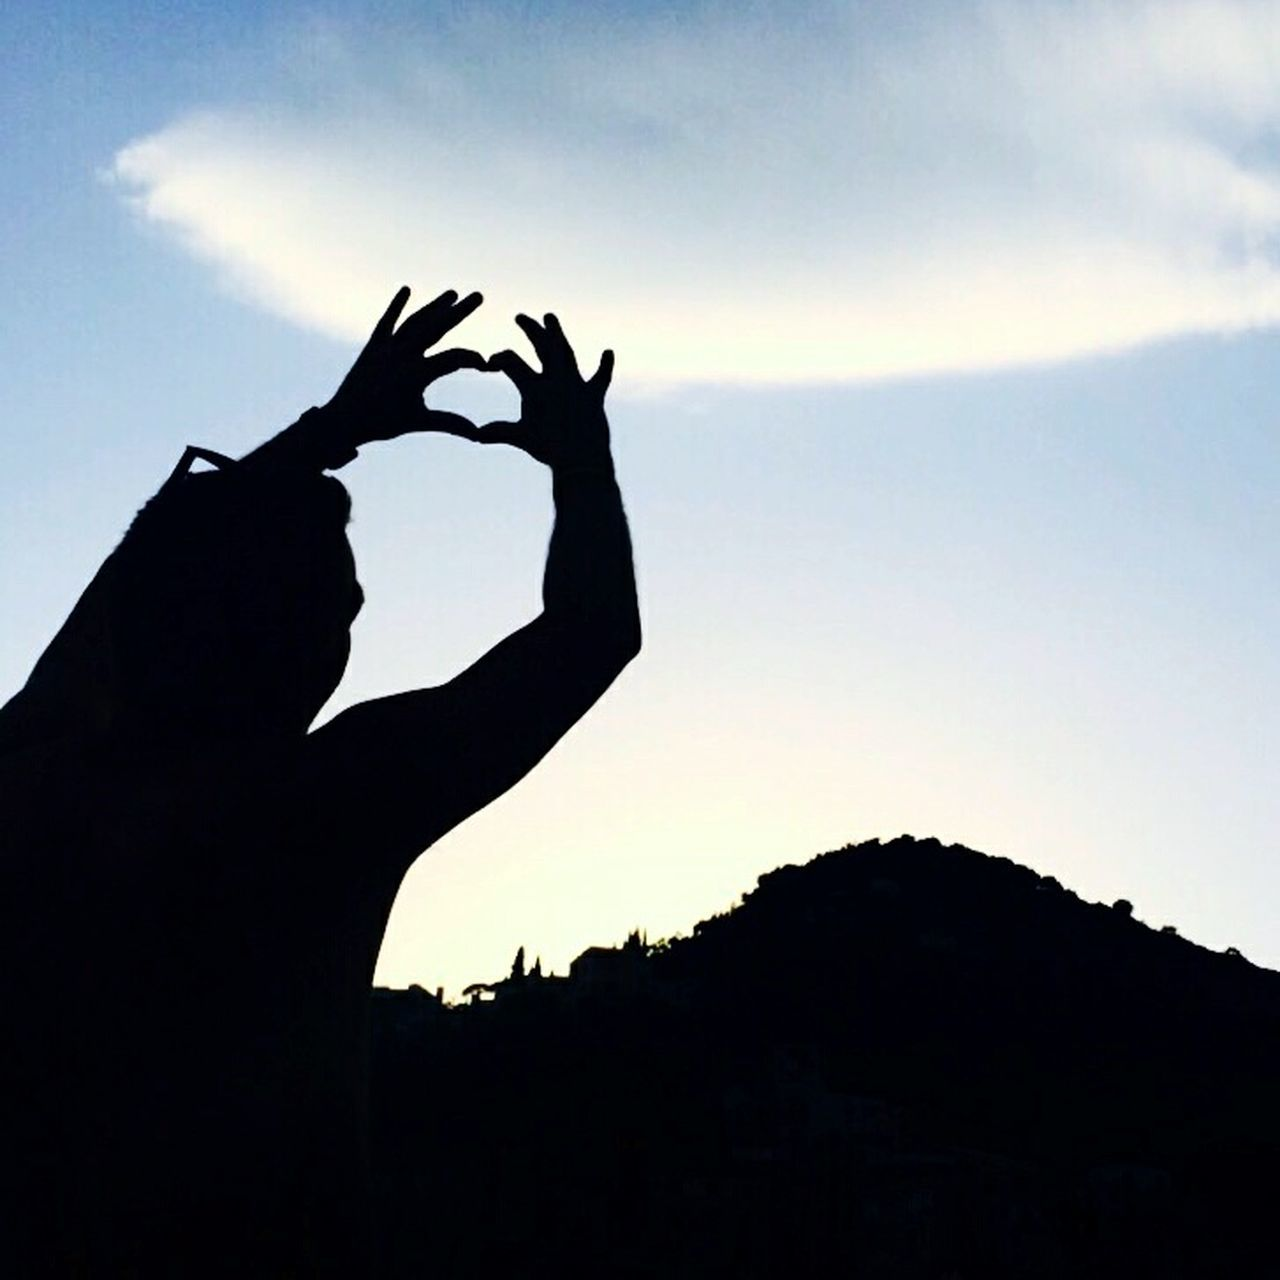 silhouette, human hand, sunset, sky, real people, gesturing, one person, human body part, nature, outdoors, beauty in nature, day, close-up, people